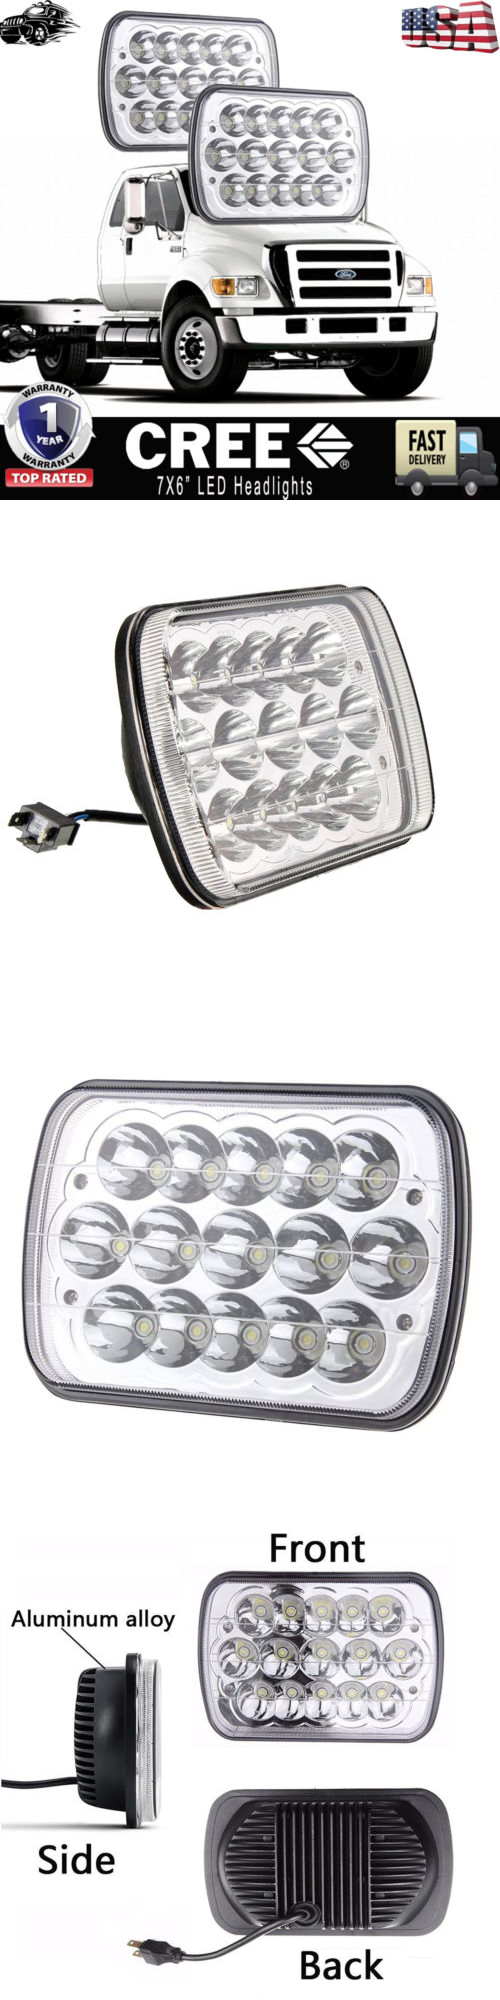 medium resolution of car lighting 7x6 led headlight upgrade for ford super duty truck f550 f600 f650 f700 f750 buy it now only 65 0